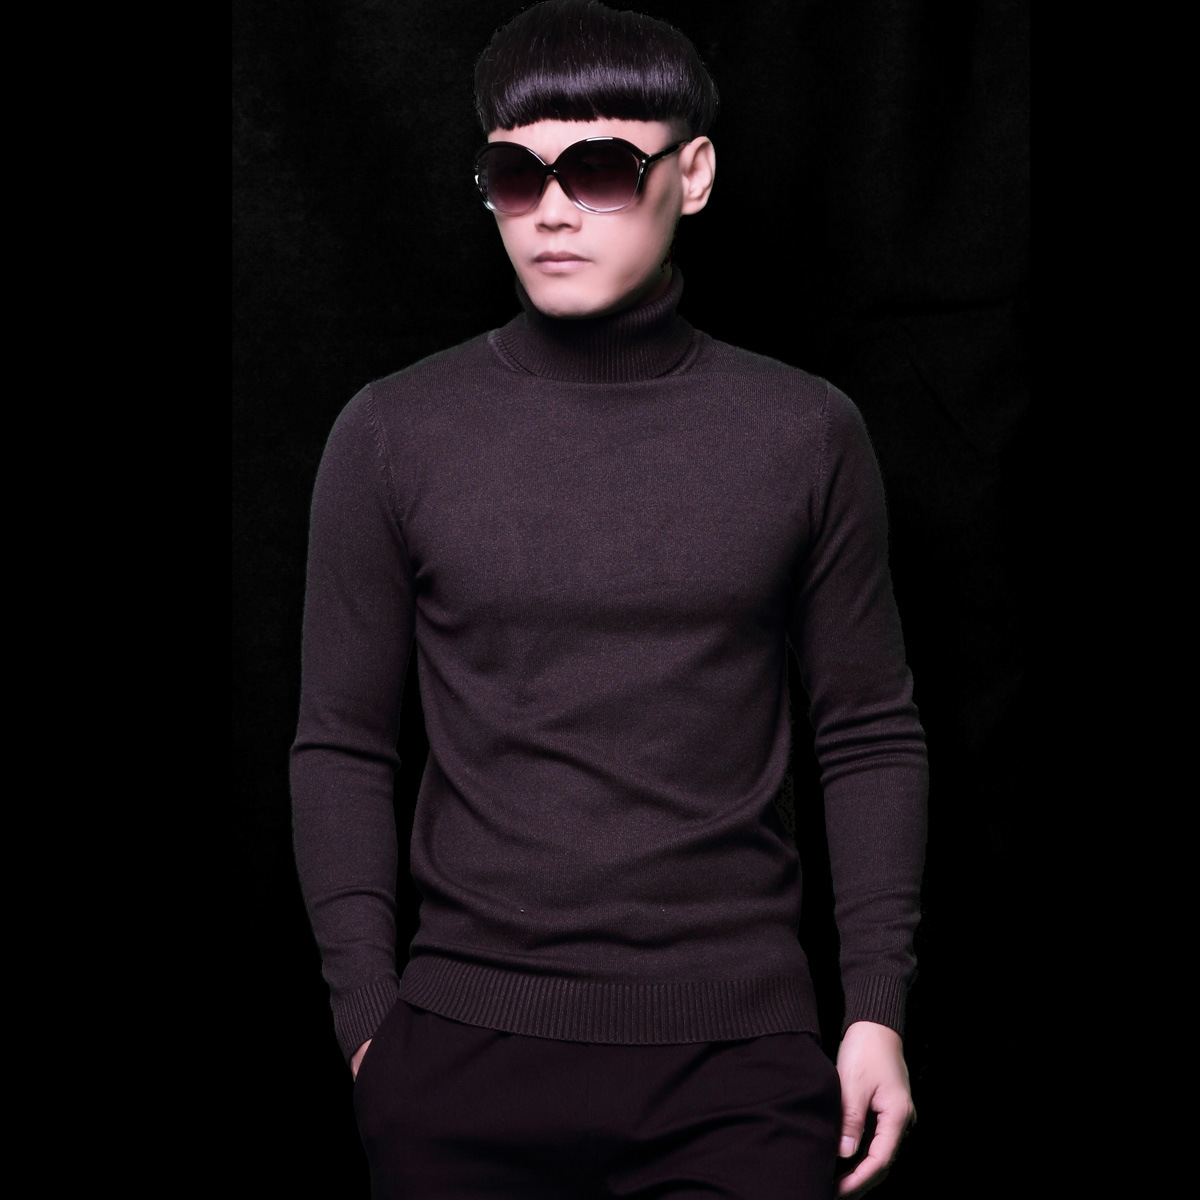 Boys Purple Sweaters Mens Winter Long Sleeve Sweater Slim Pullovers Plus Size Male Knitwear Minimalist Casual Knitted Turtleneck